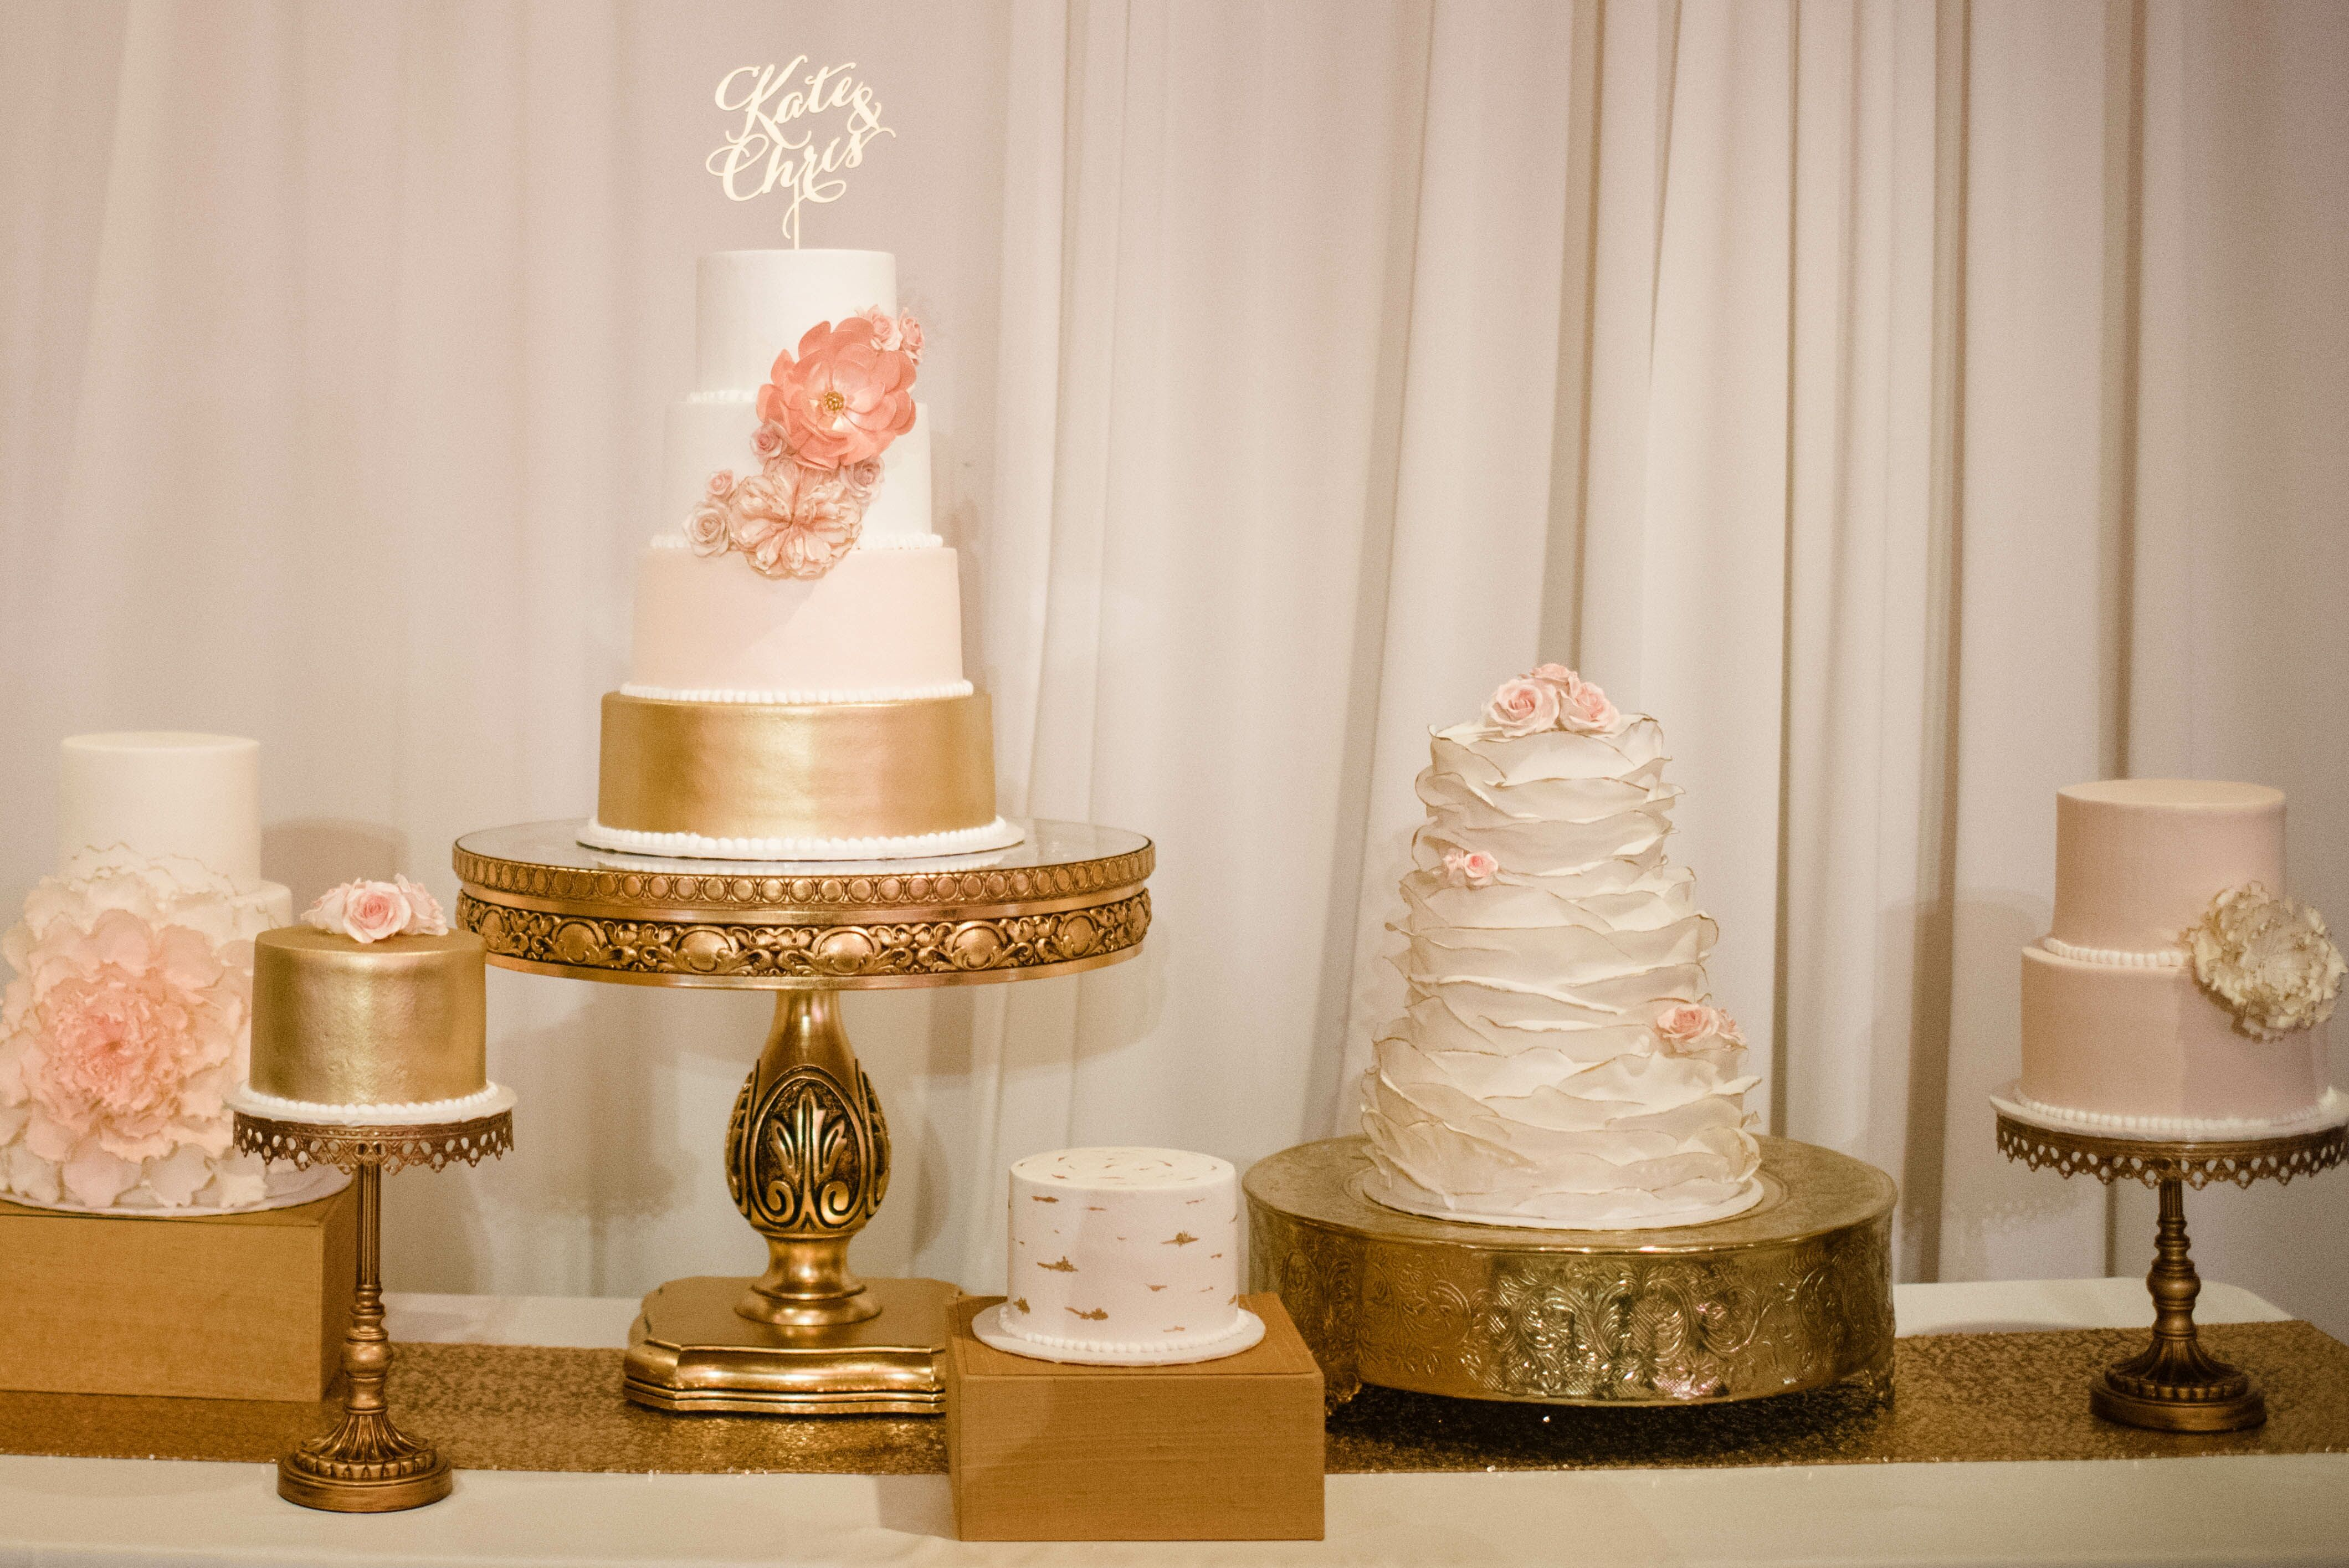 White Blush And Gold Dessert Table With Seven Cakes